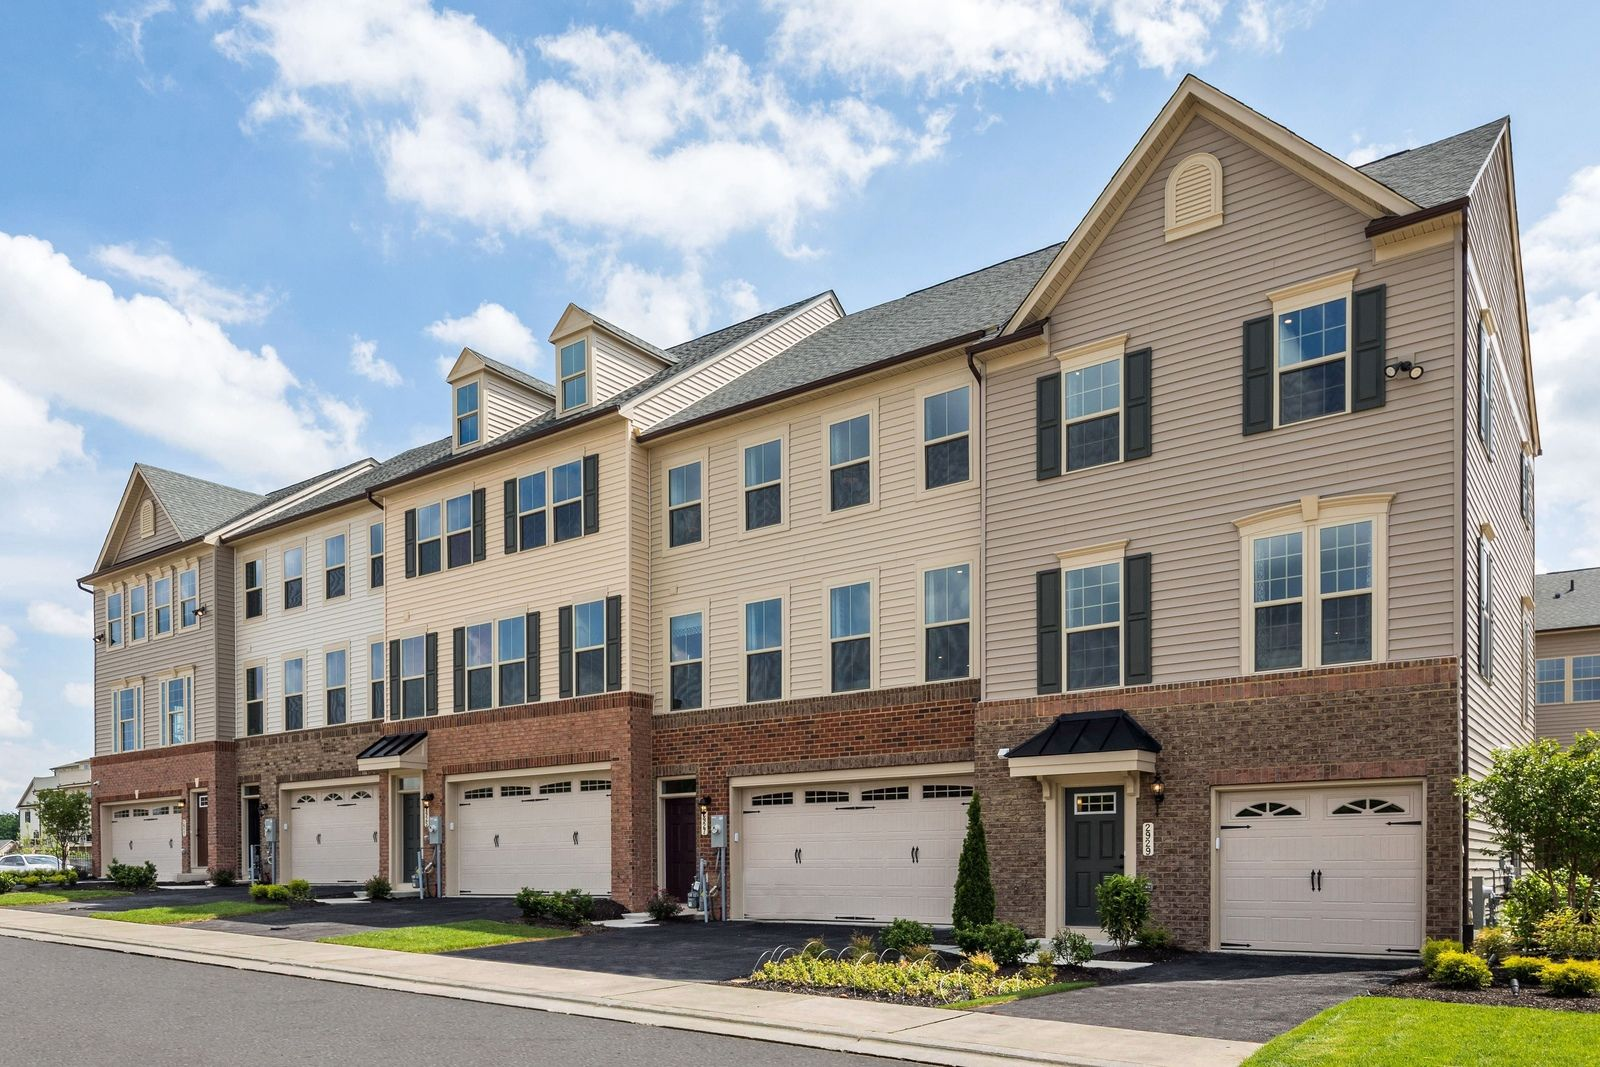 JOIN THE VIP LIST TO GET THE LATEST UPDATES AND LOWEST PRICING:Coming Soon Early Fall 2020.1 & 2 Car Garage Townhomes in a convenient location from thelow-mid $300s!Join the VIP List Today!